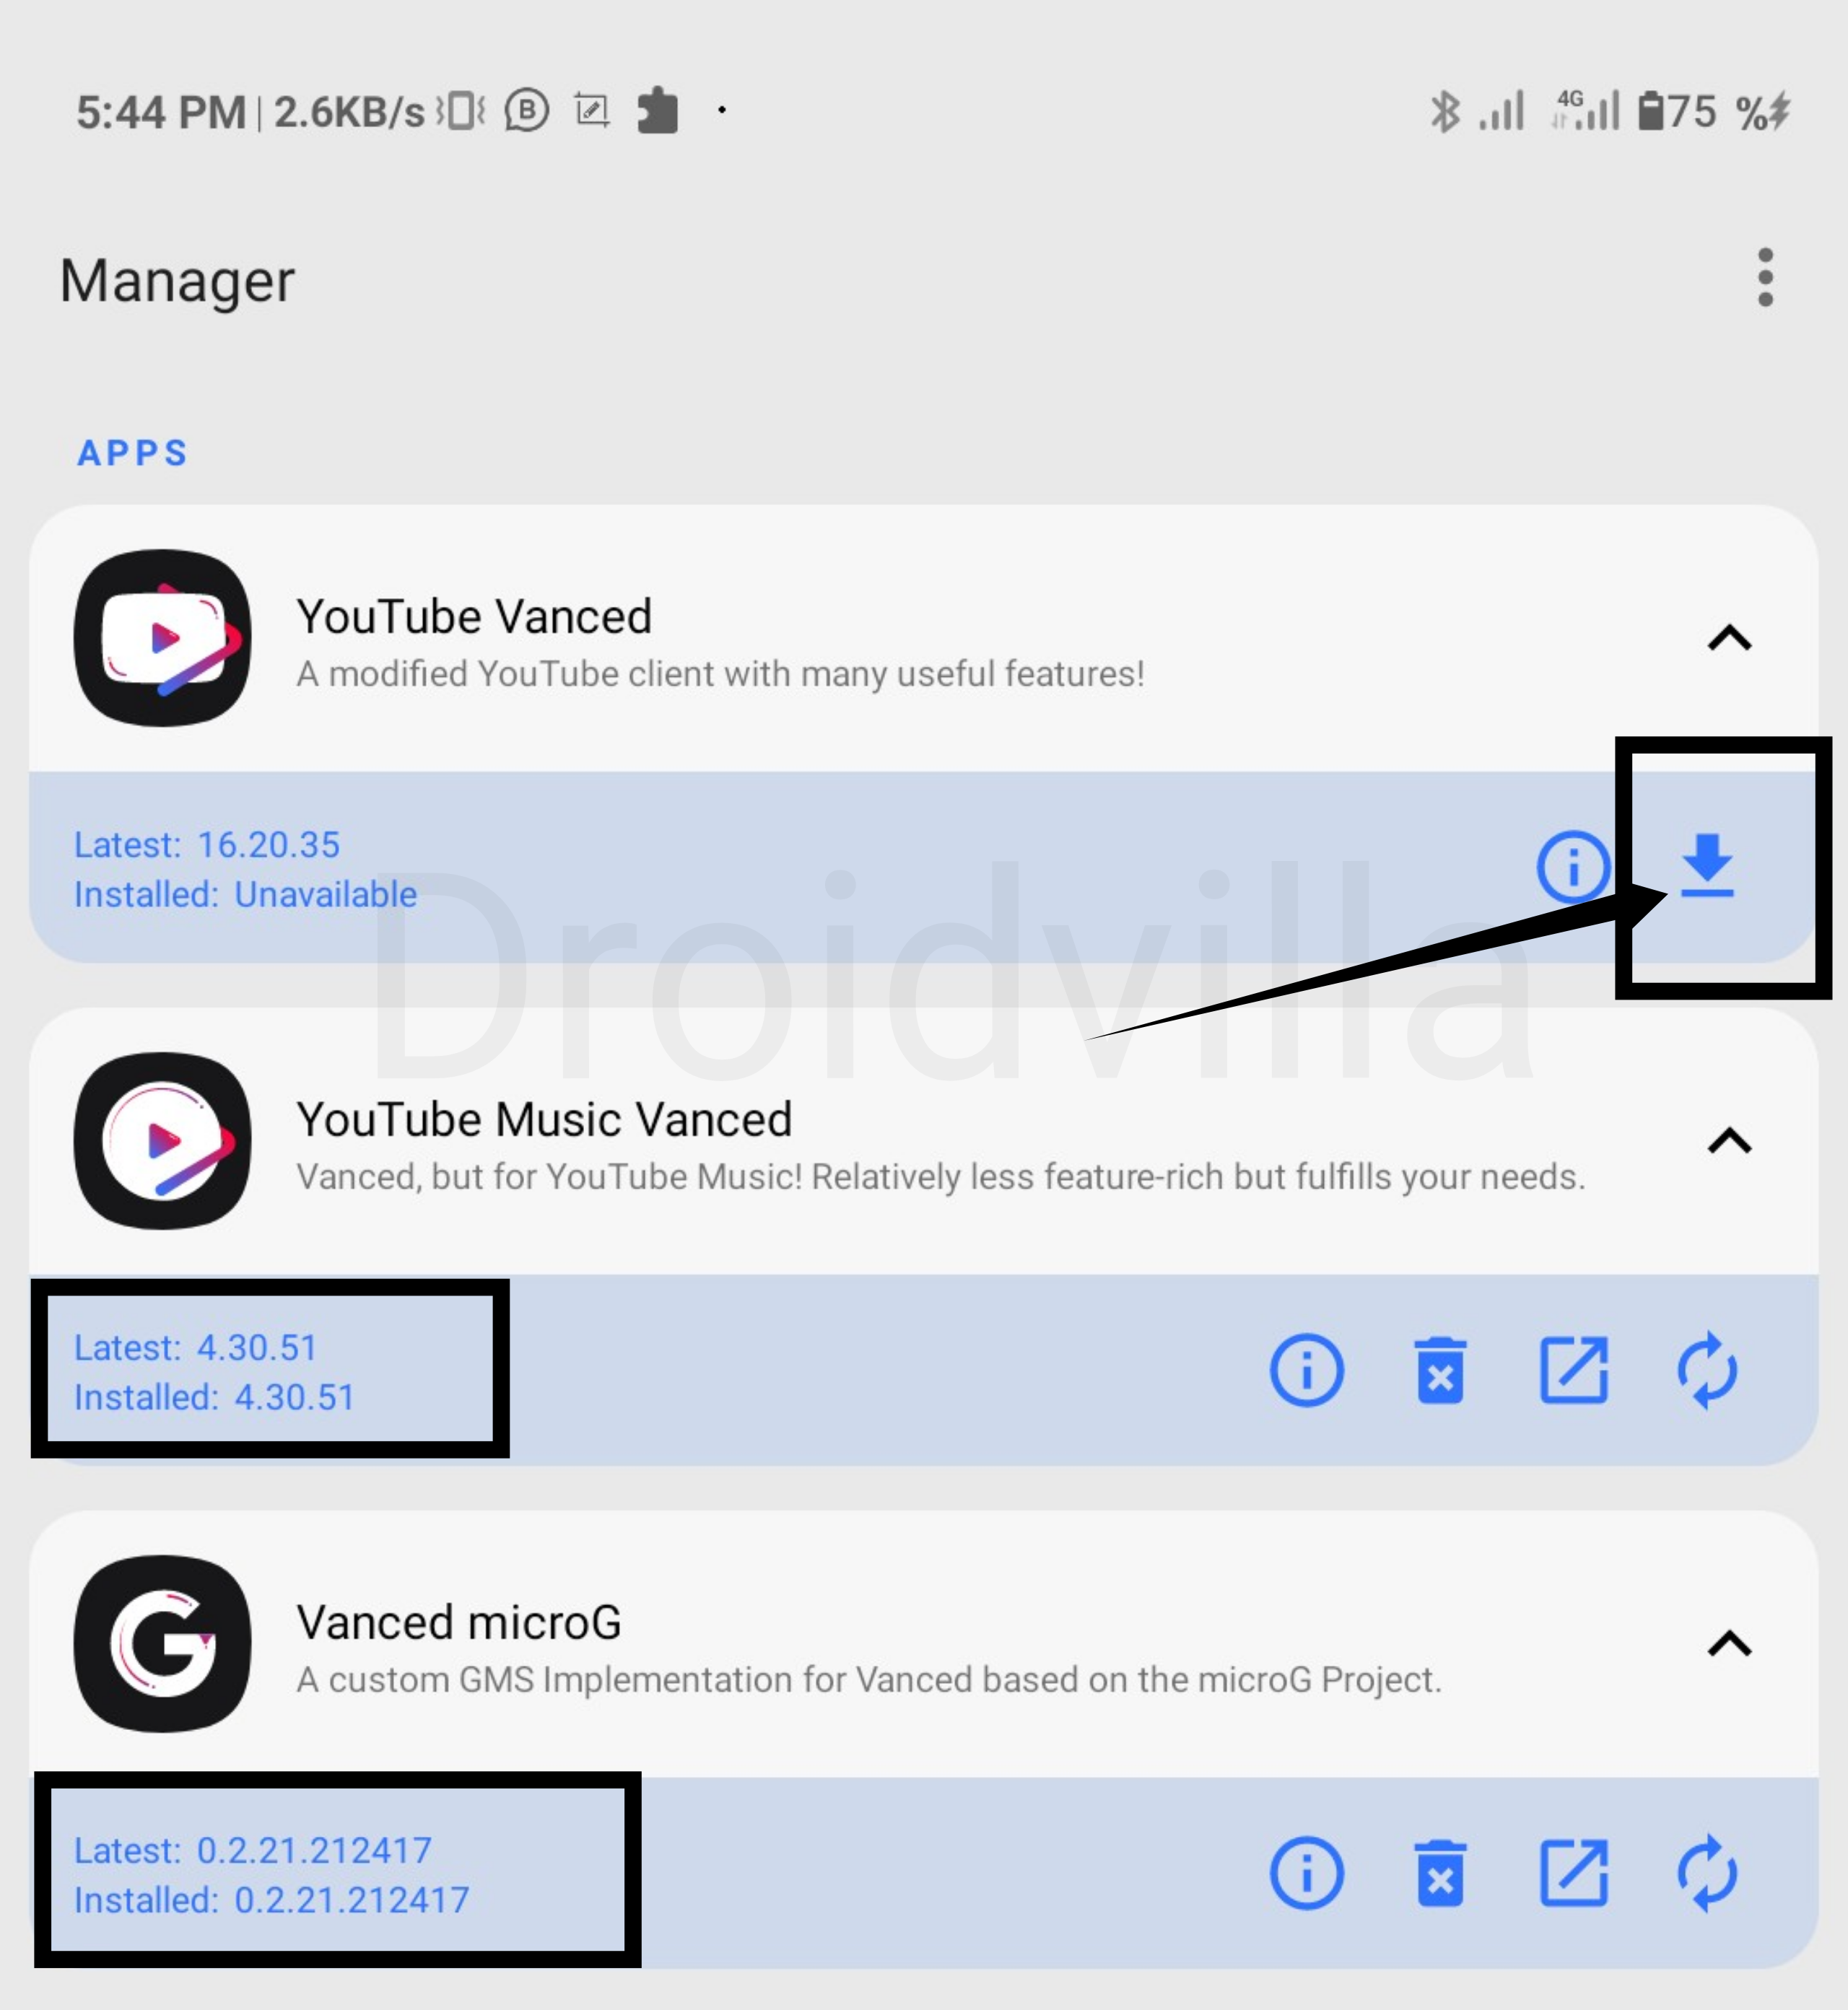 How to enjoy free lifetime YouTube premium services [Yt music and YouTube Video]